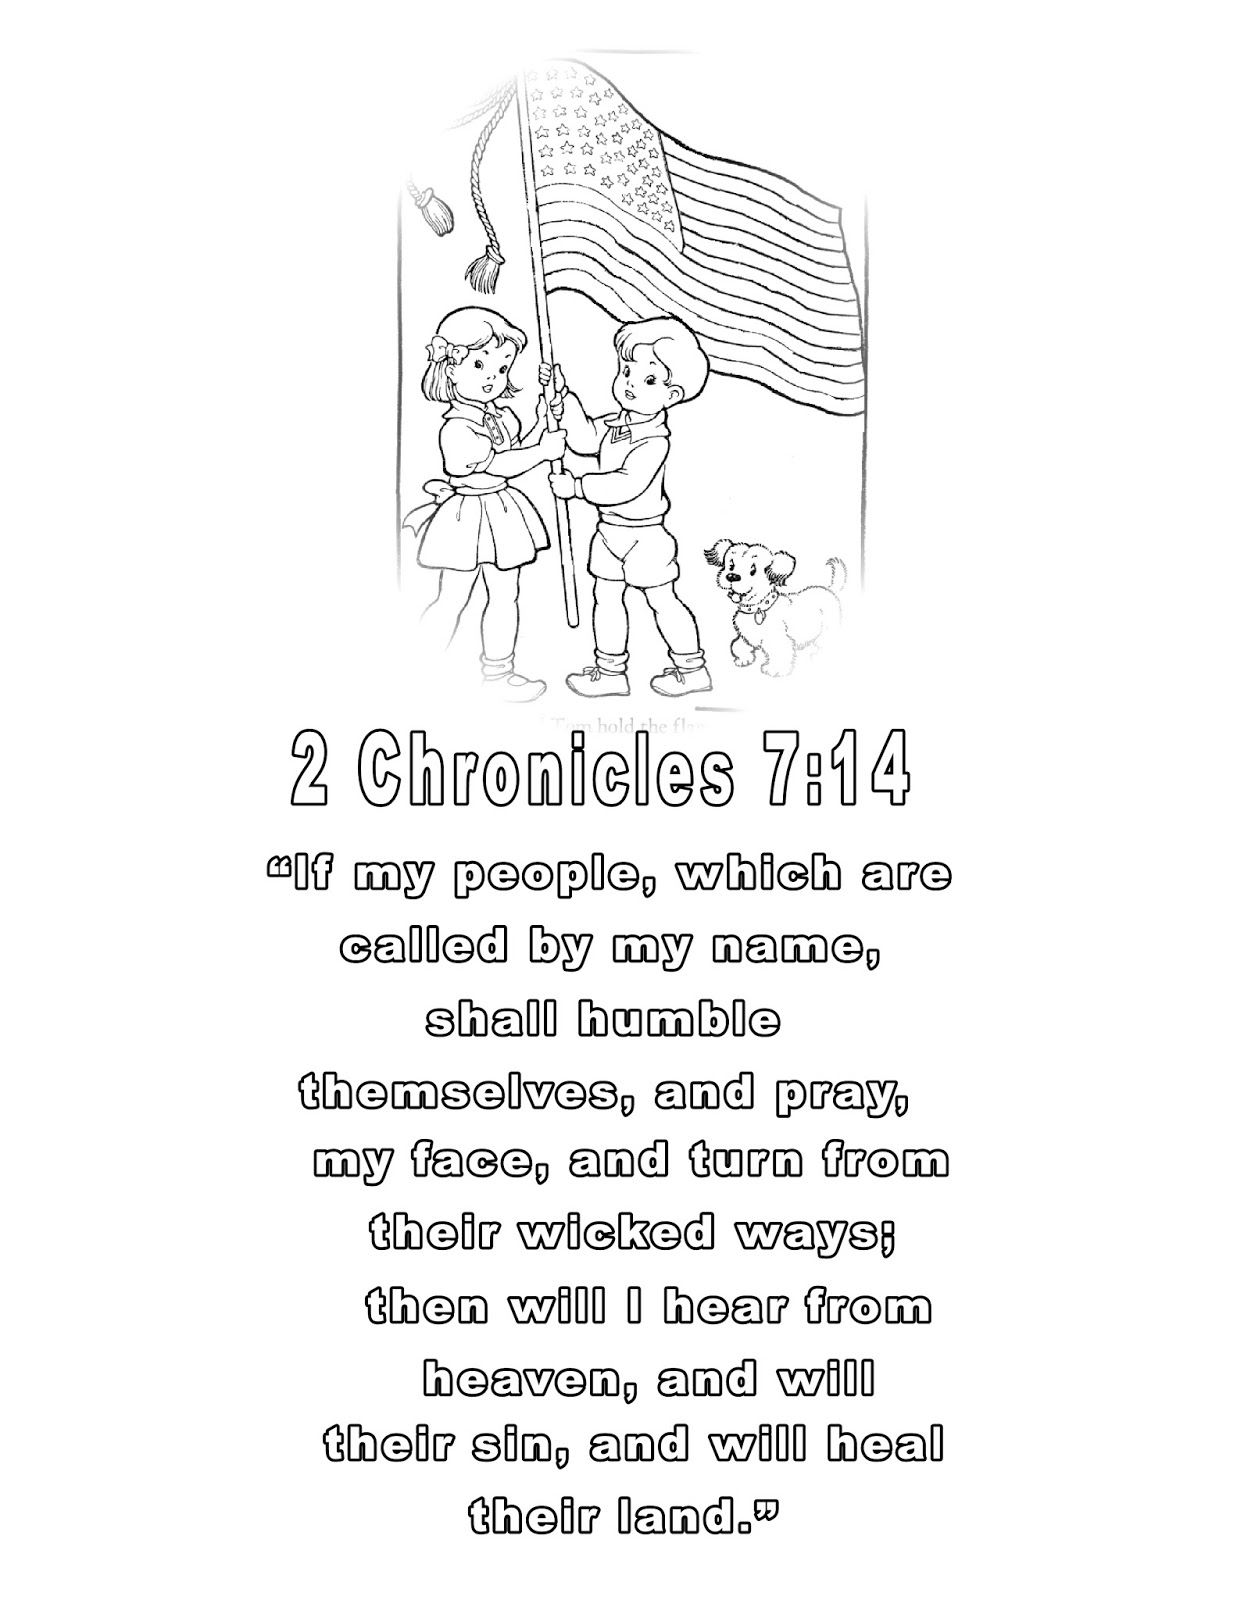 Children's Gems In My Treasure Box: 2 Chronicles 7:14 Coloring